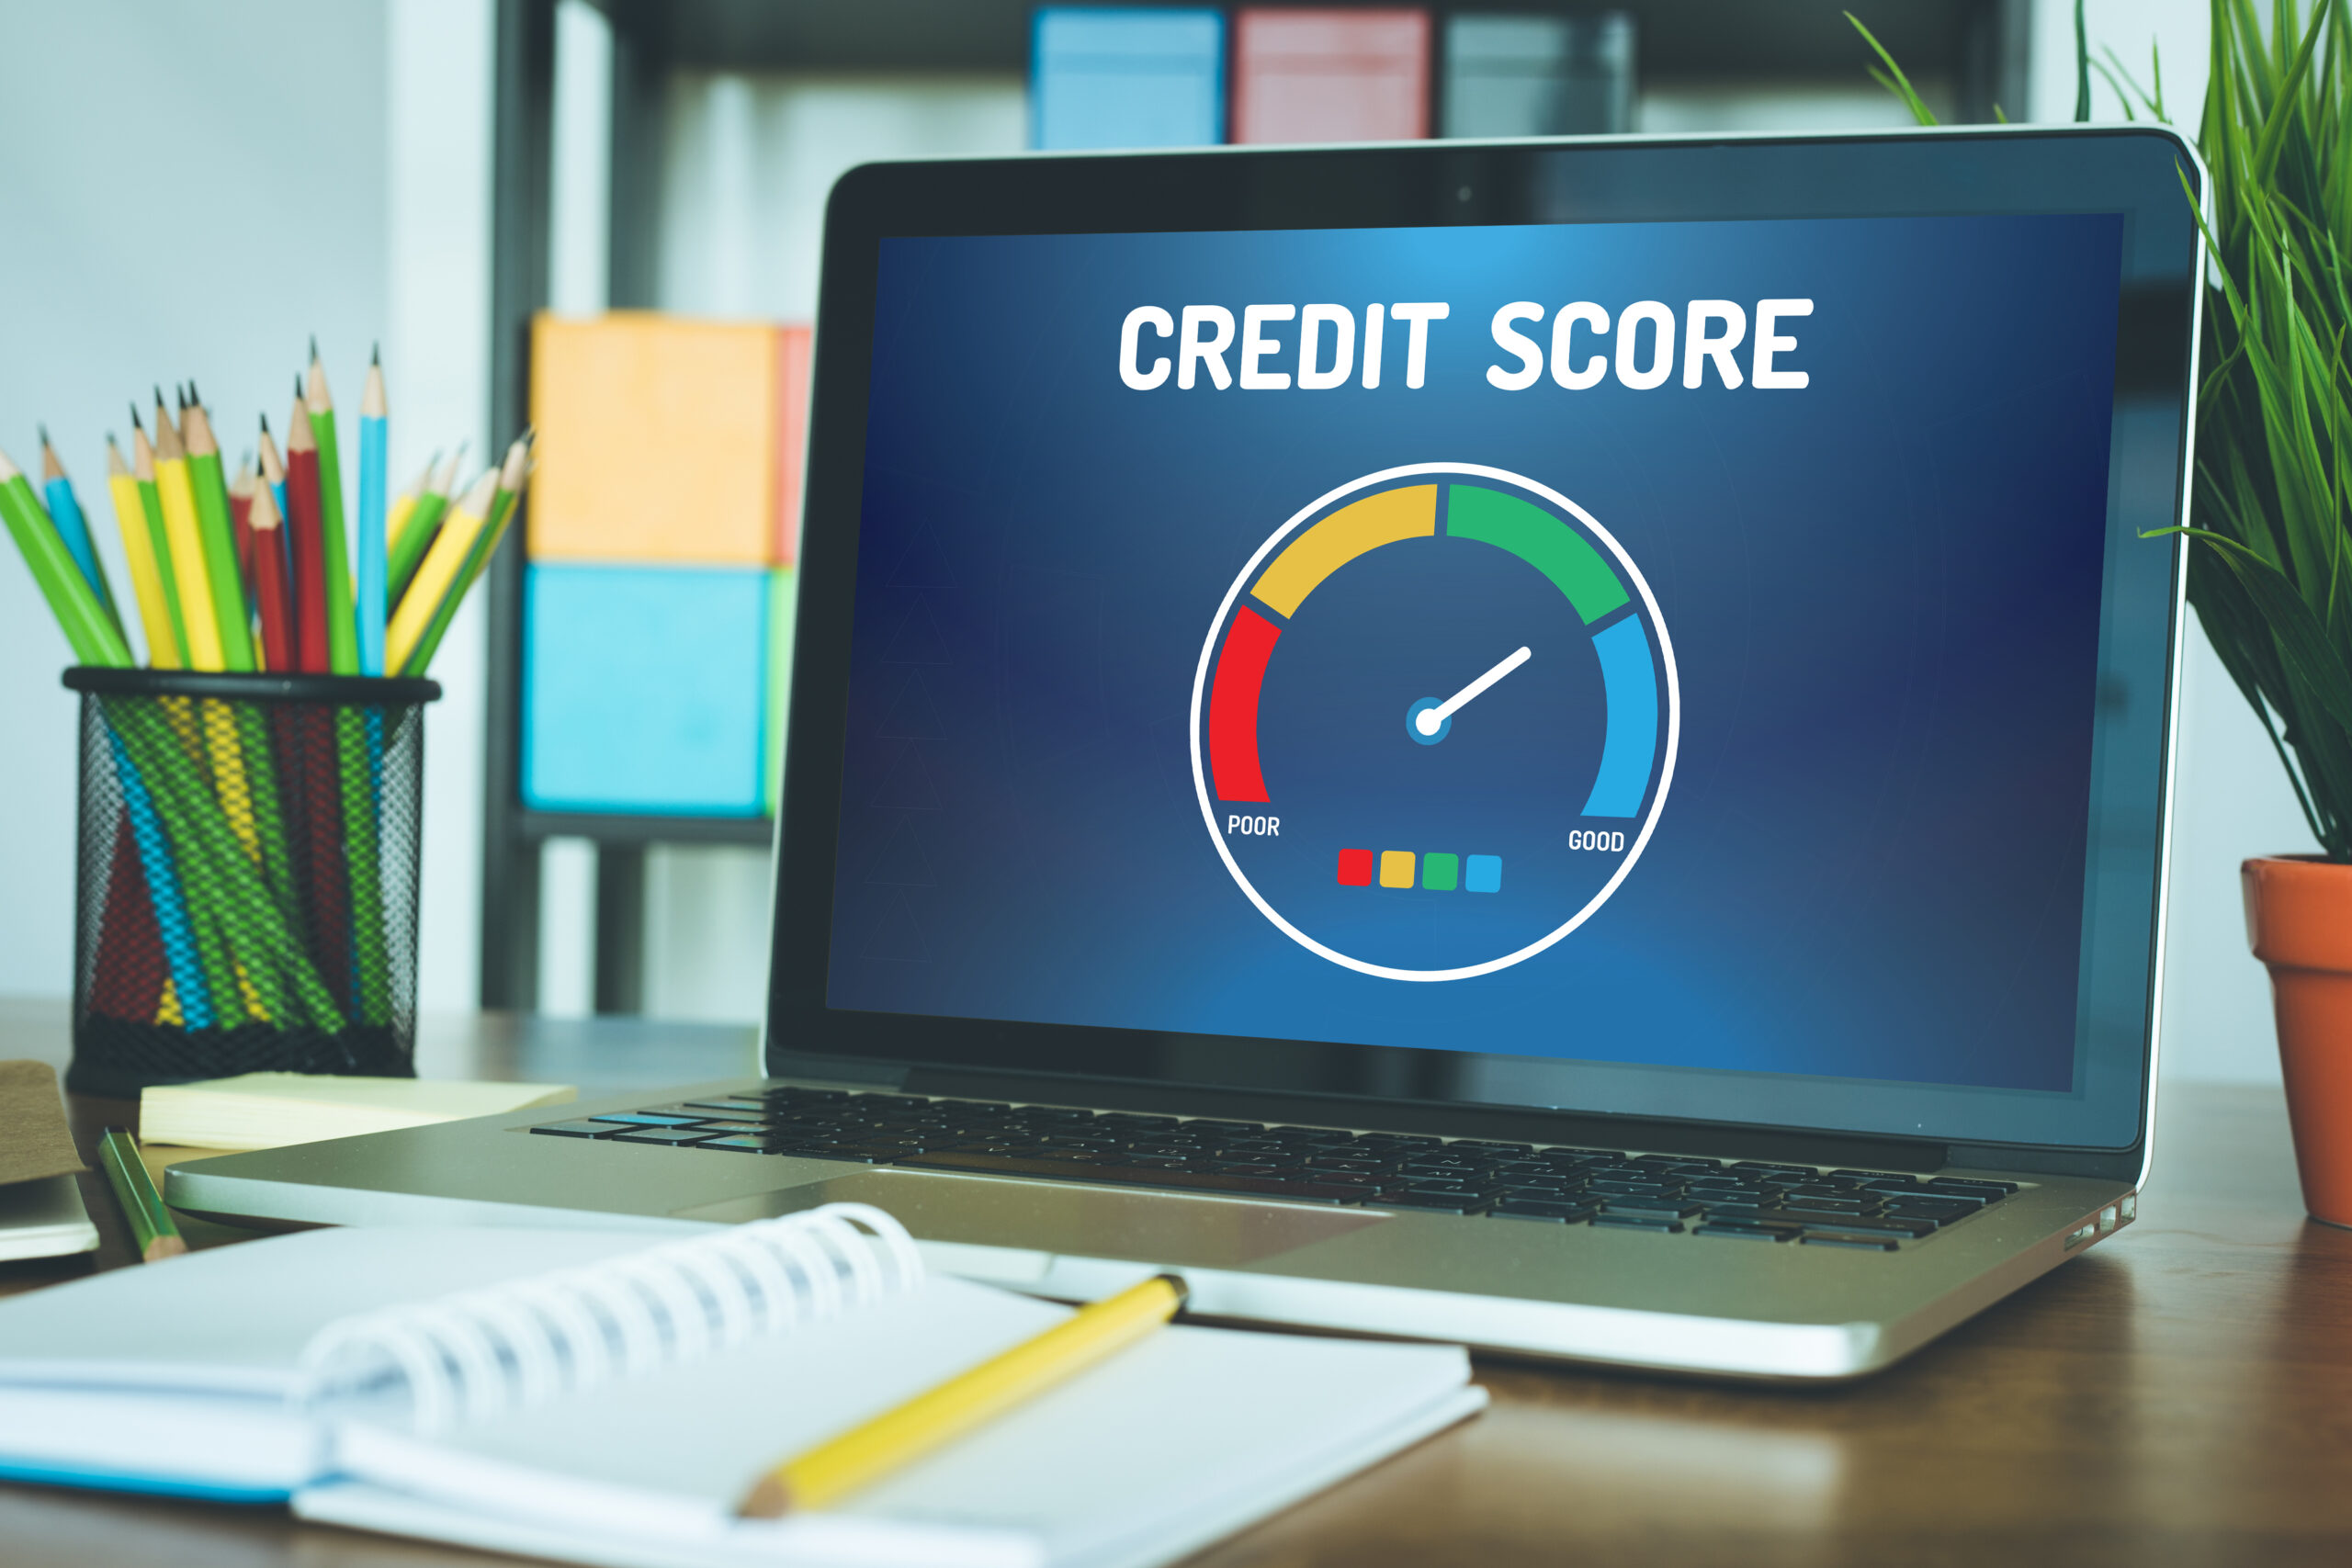 Tips for good credit